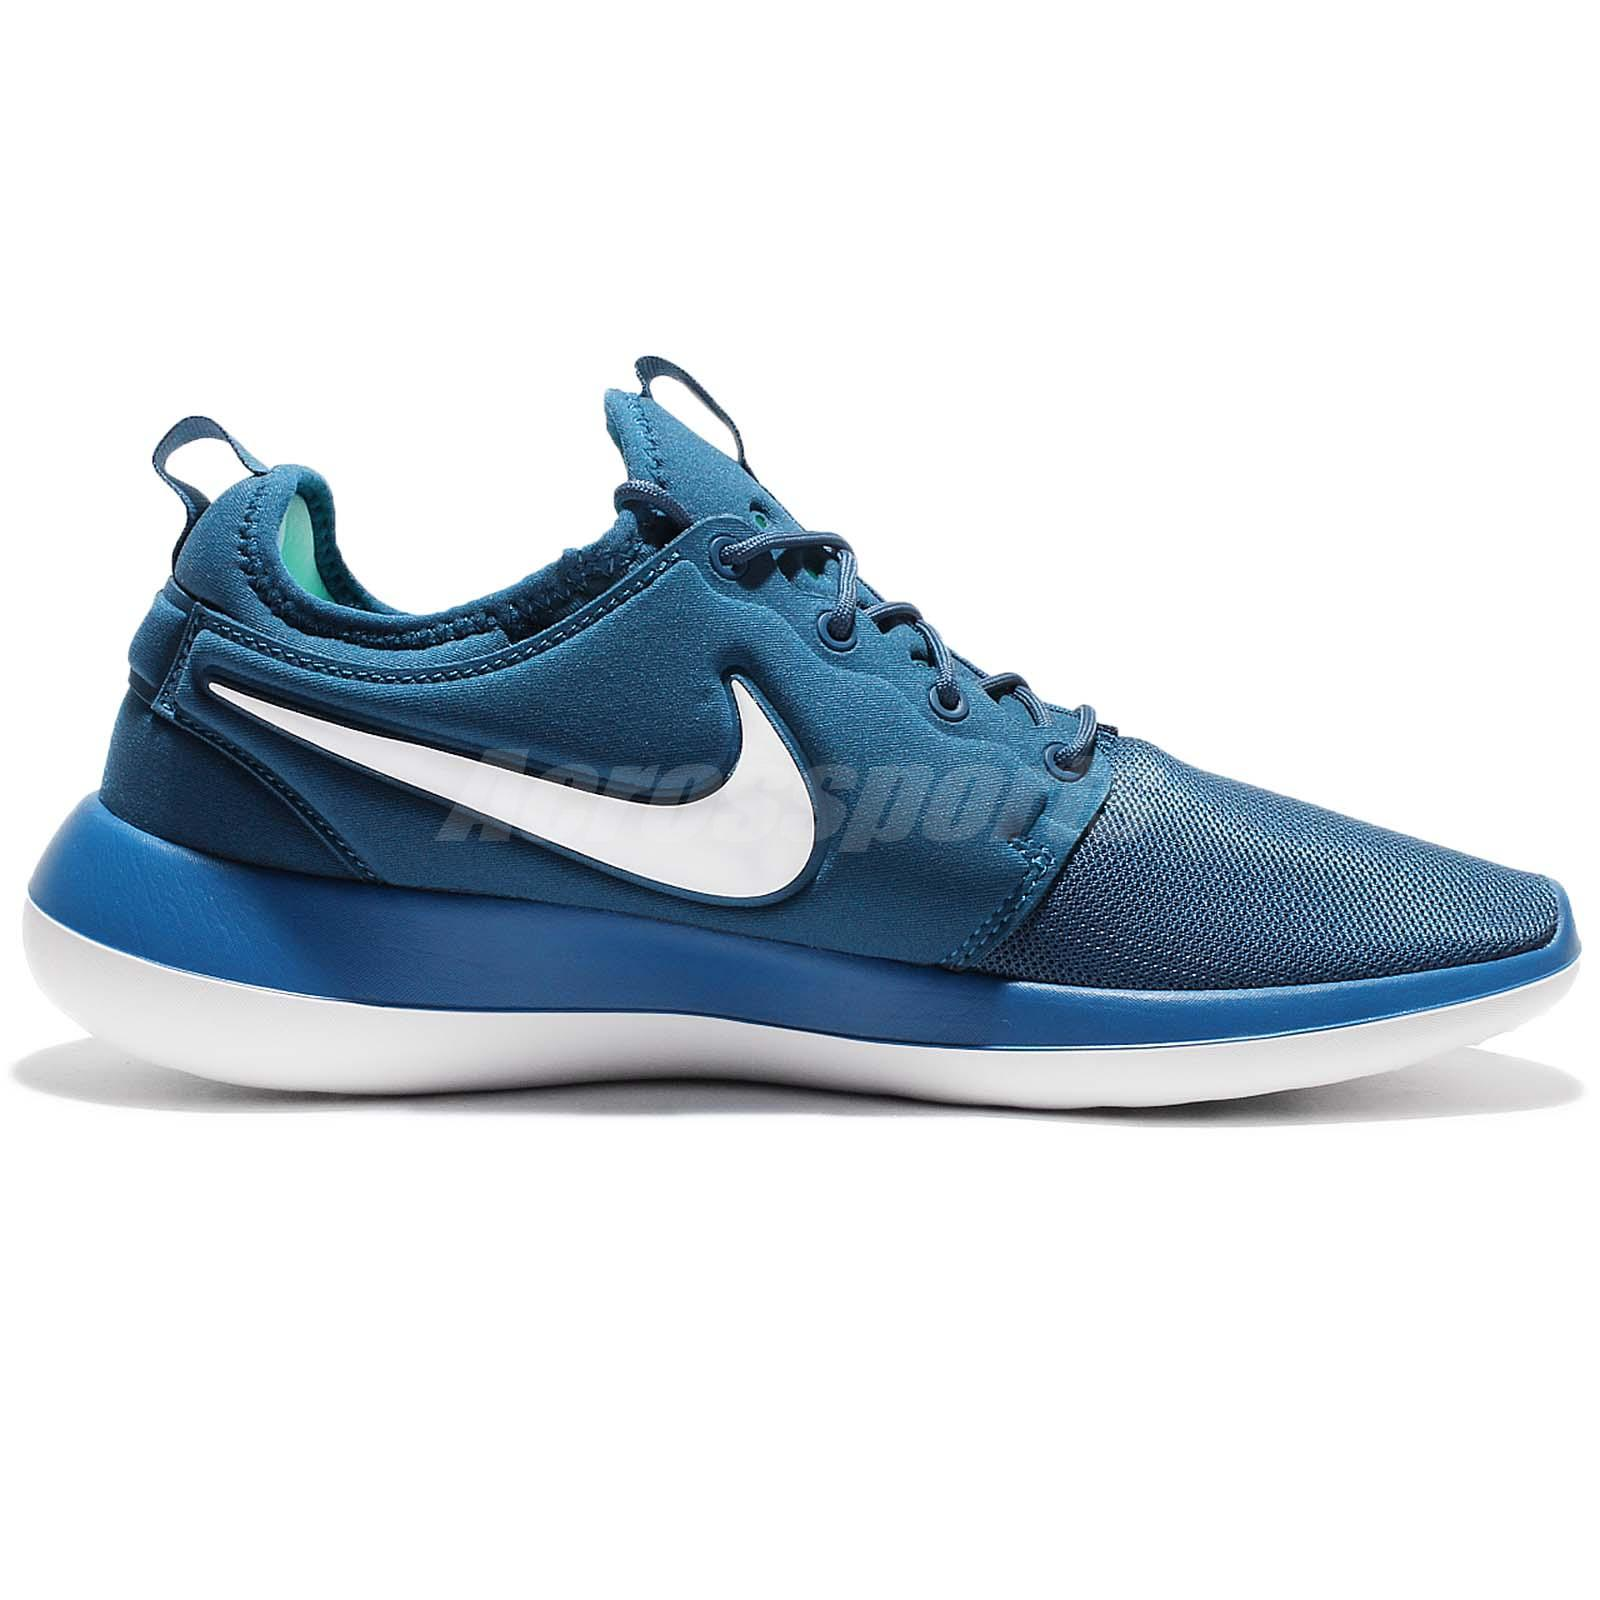 Nike Roshe Two 2 Rosherun Blue White Men Running Shoes Sneakers ... 605e44dff